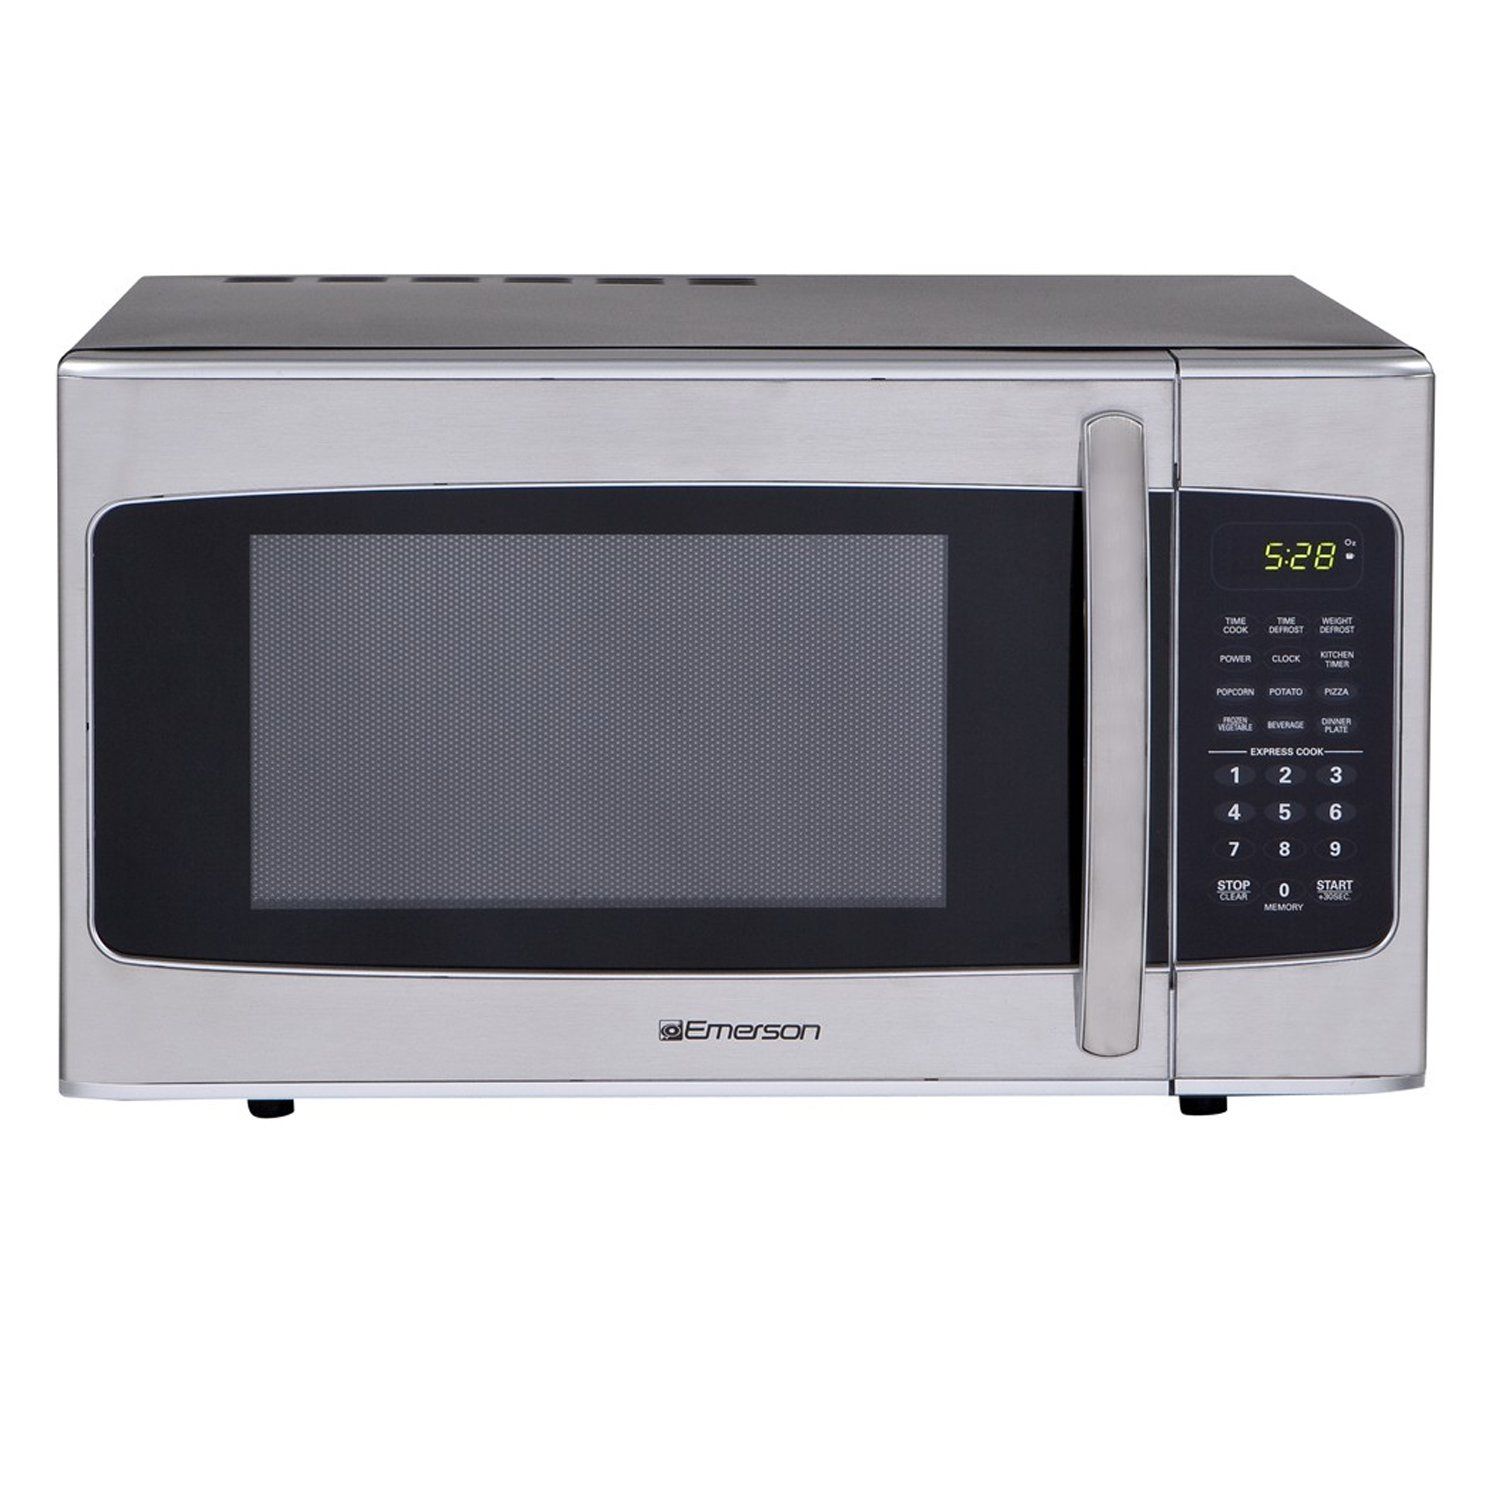 Emerson MWG1337SB, 1.3 CU. FT. 1000 Watt, Touch Control, Stainless Steel Microwave Oven Emerson Radio